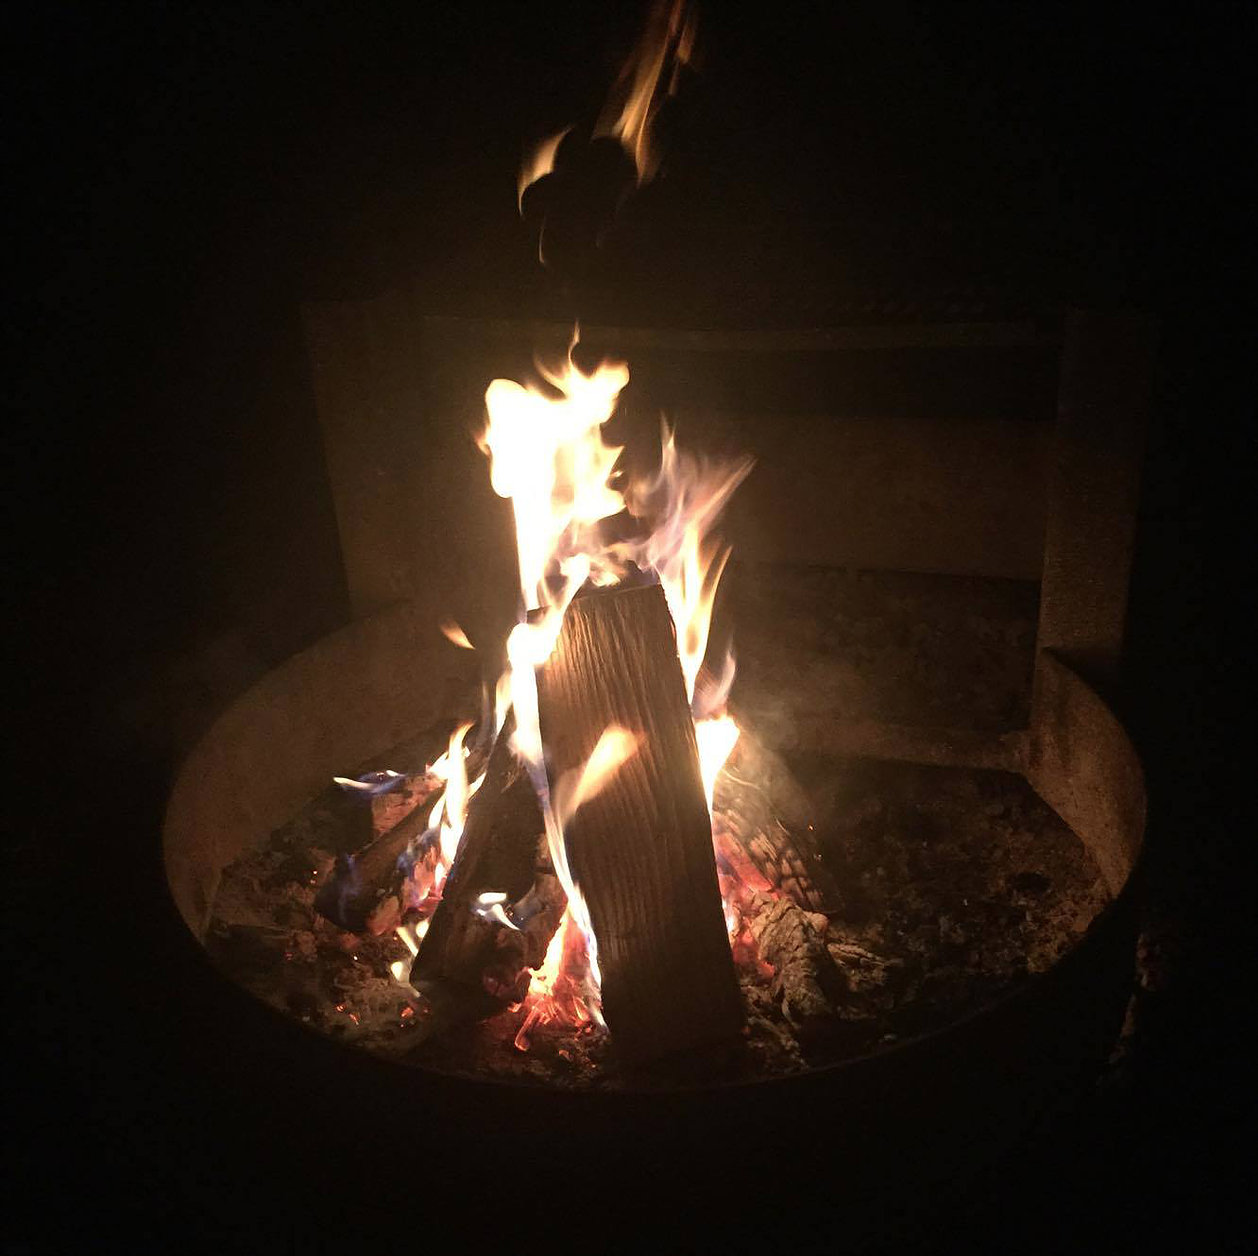 Image by Rachel Leah Gerson. NOTE: This photograph has not been filtered, engineered, or edited in any way. You can clearly see creatures dancing in the fire! More pictures on Instagram @doorwaytoself    *This is part 2 of 3. Click  here  to read part 1.